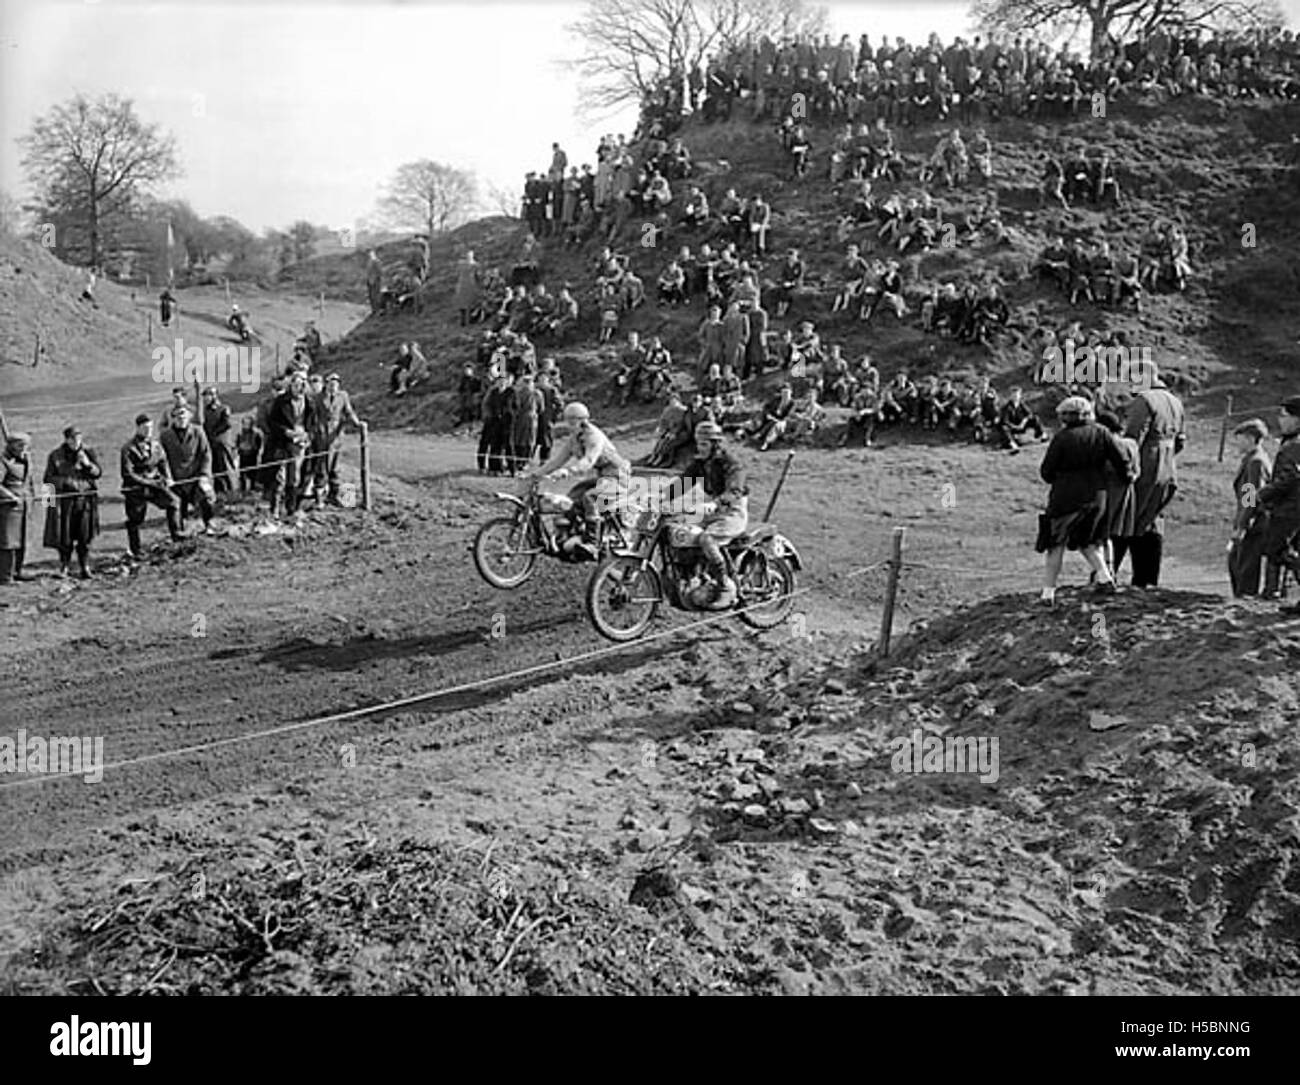 Motorcycle scramble at Queenshead, Oswestry - Stock Image